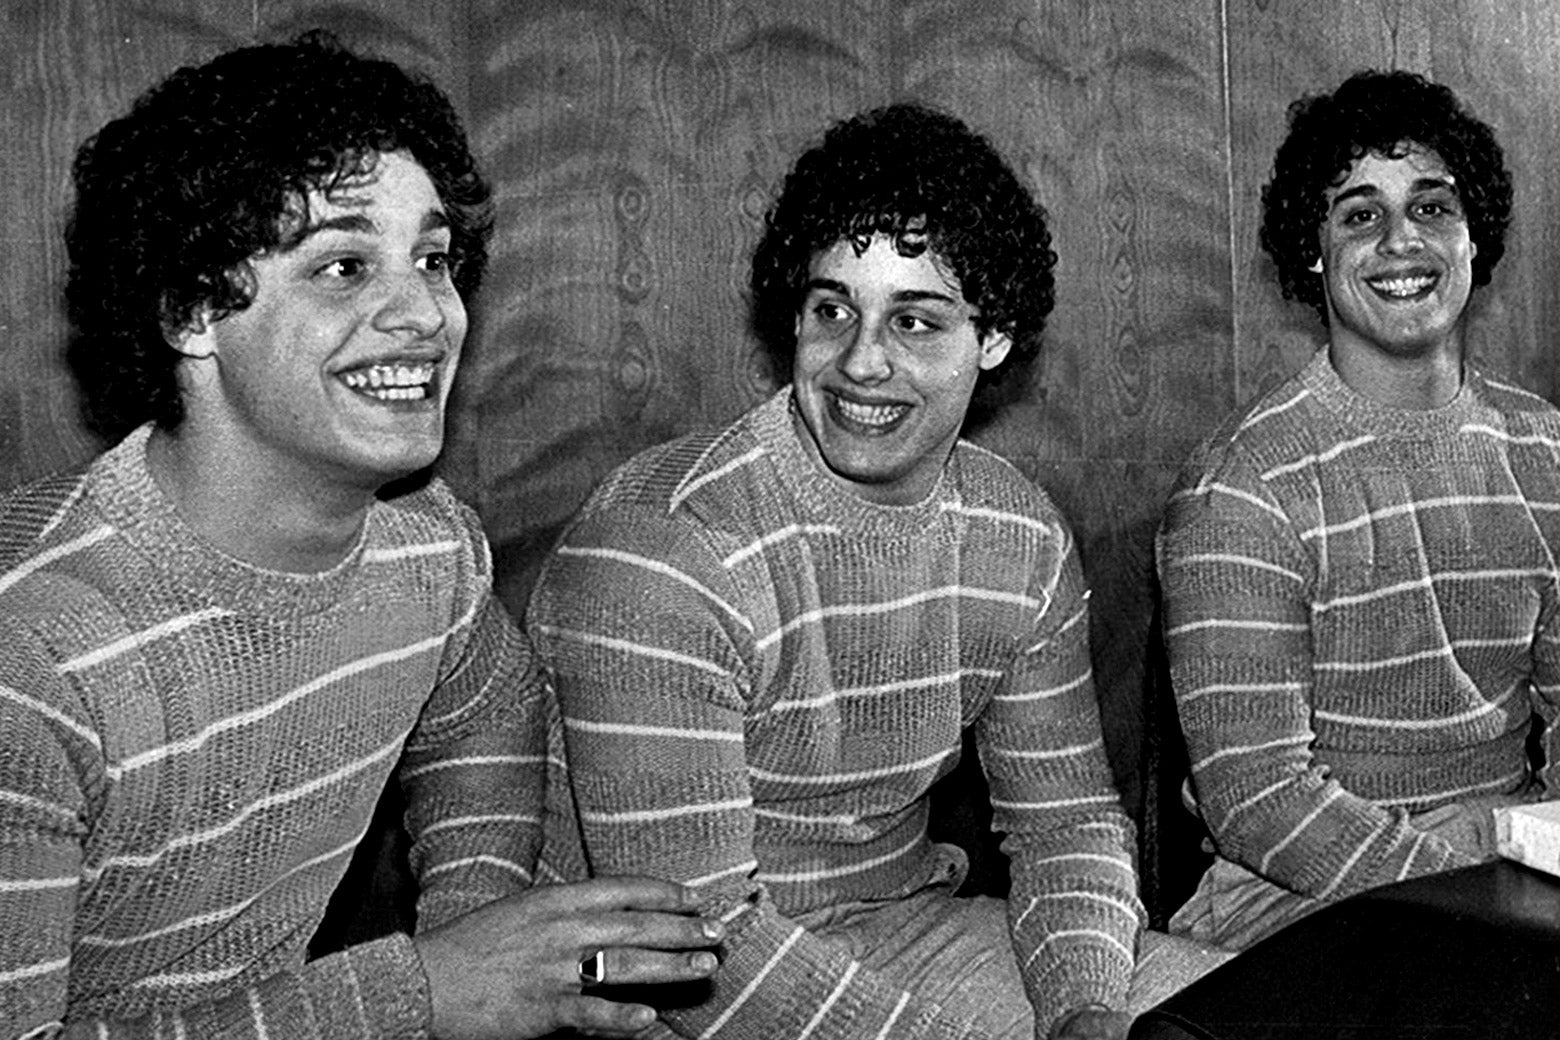 Bobby Shafran, Eddy Galland, and David Kellman—triplets who were separated for science.